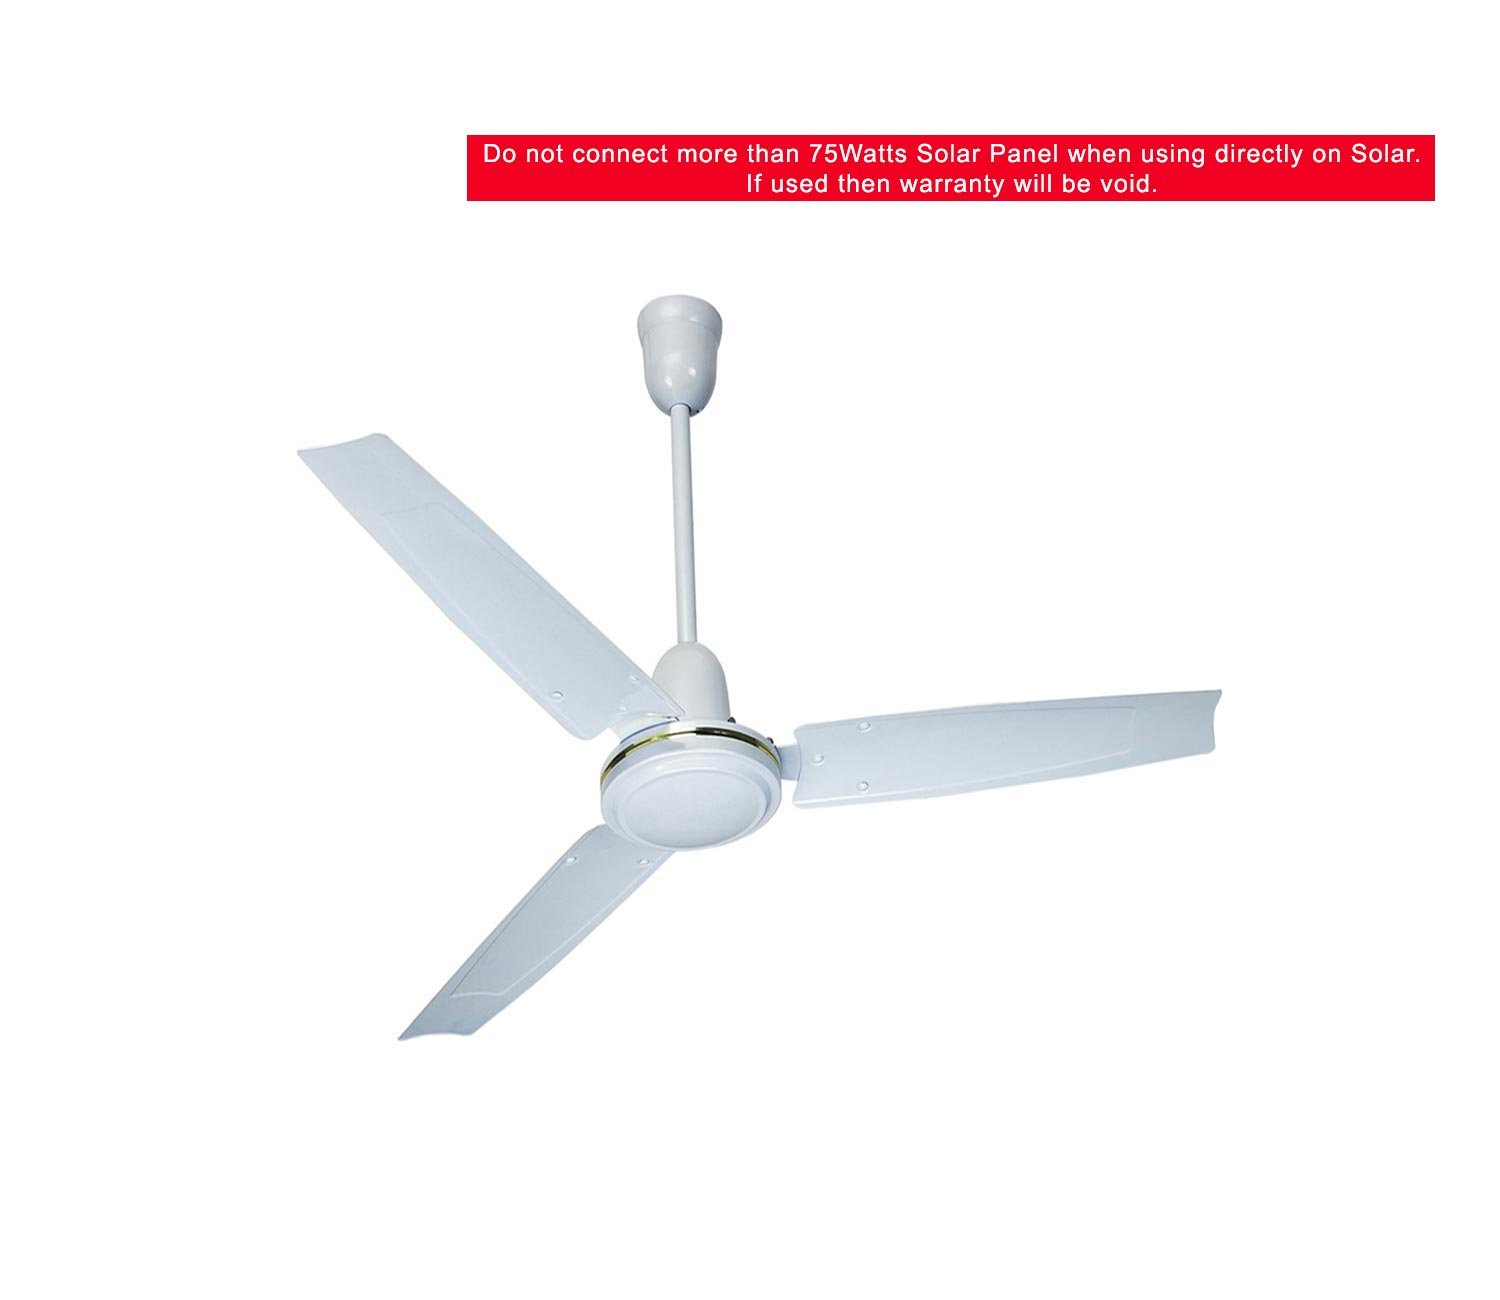 Solar DC Ceiling Fan 12V 32Watts BLDC Made in India Blade Size